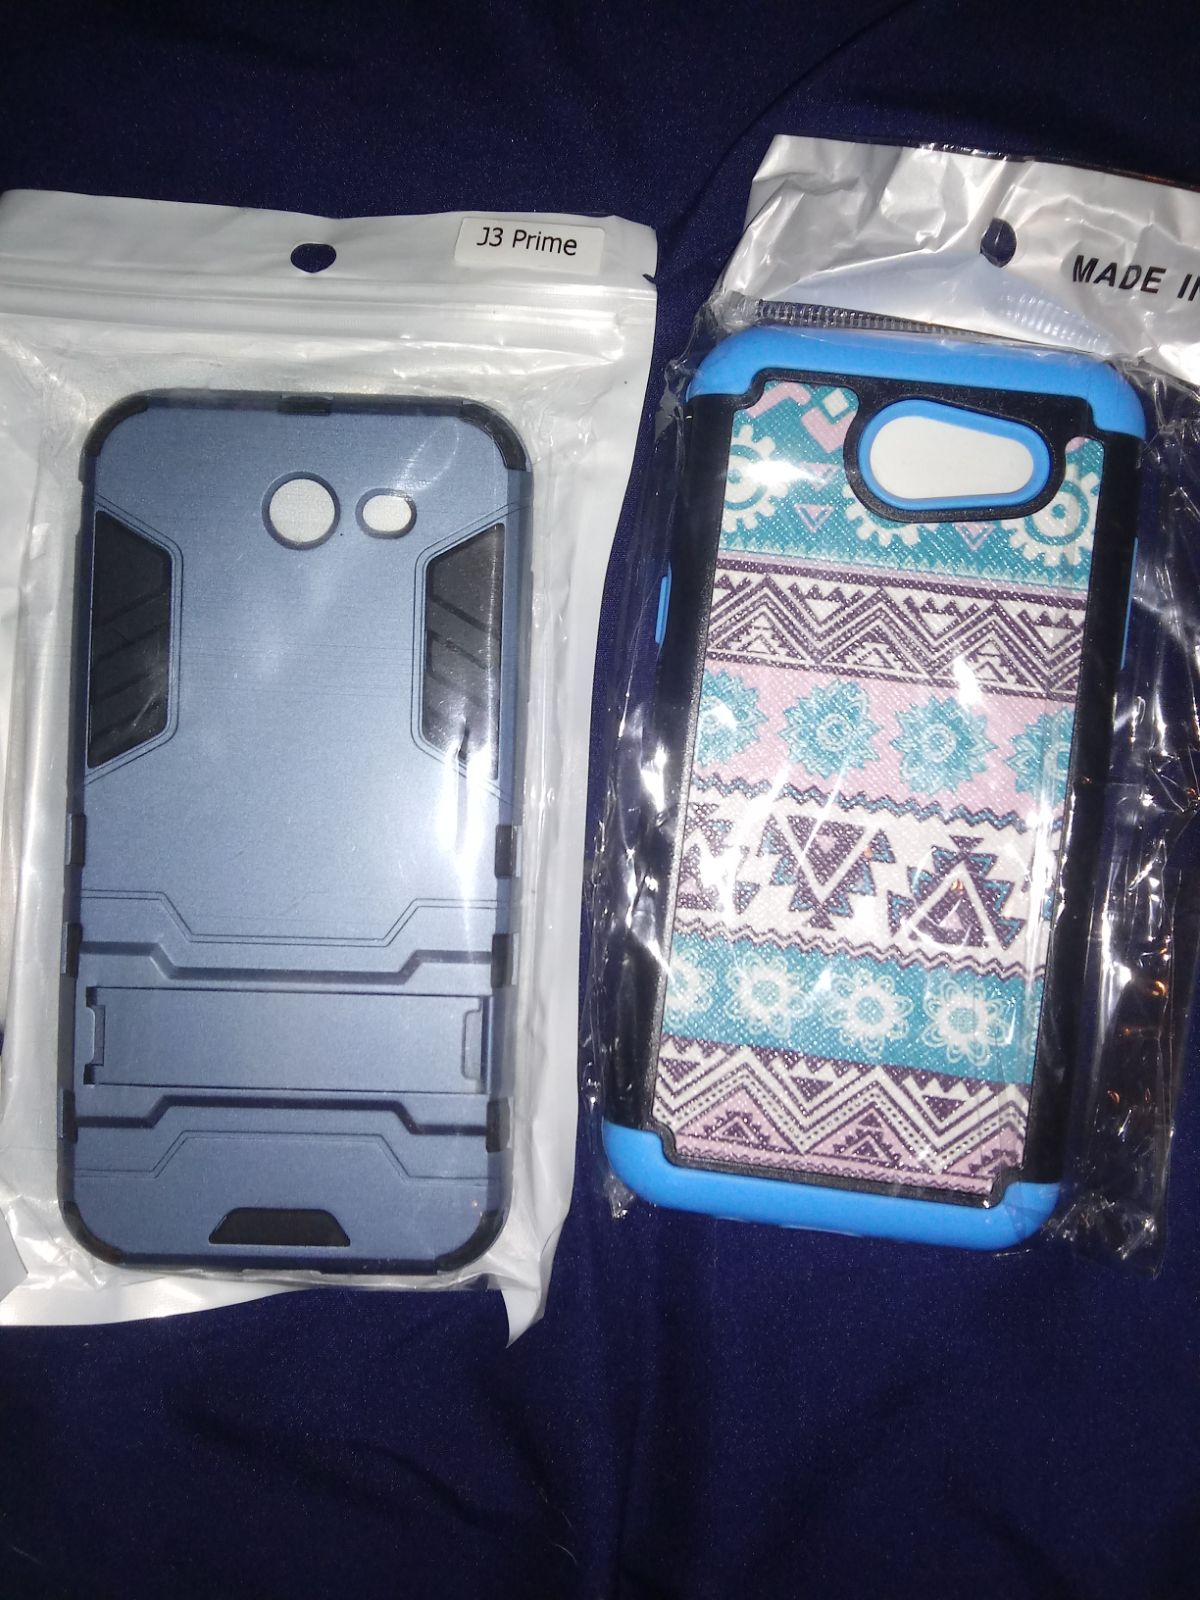 Cases for J3 Prime phone